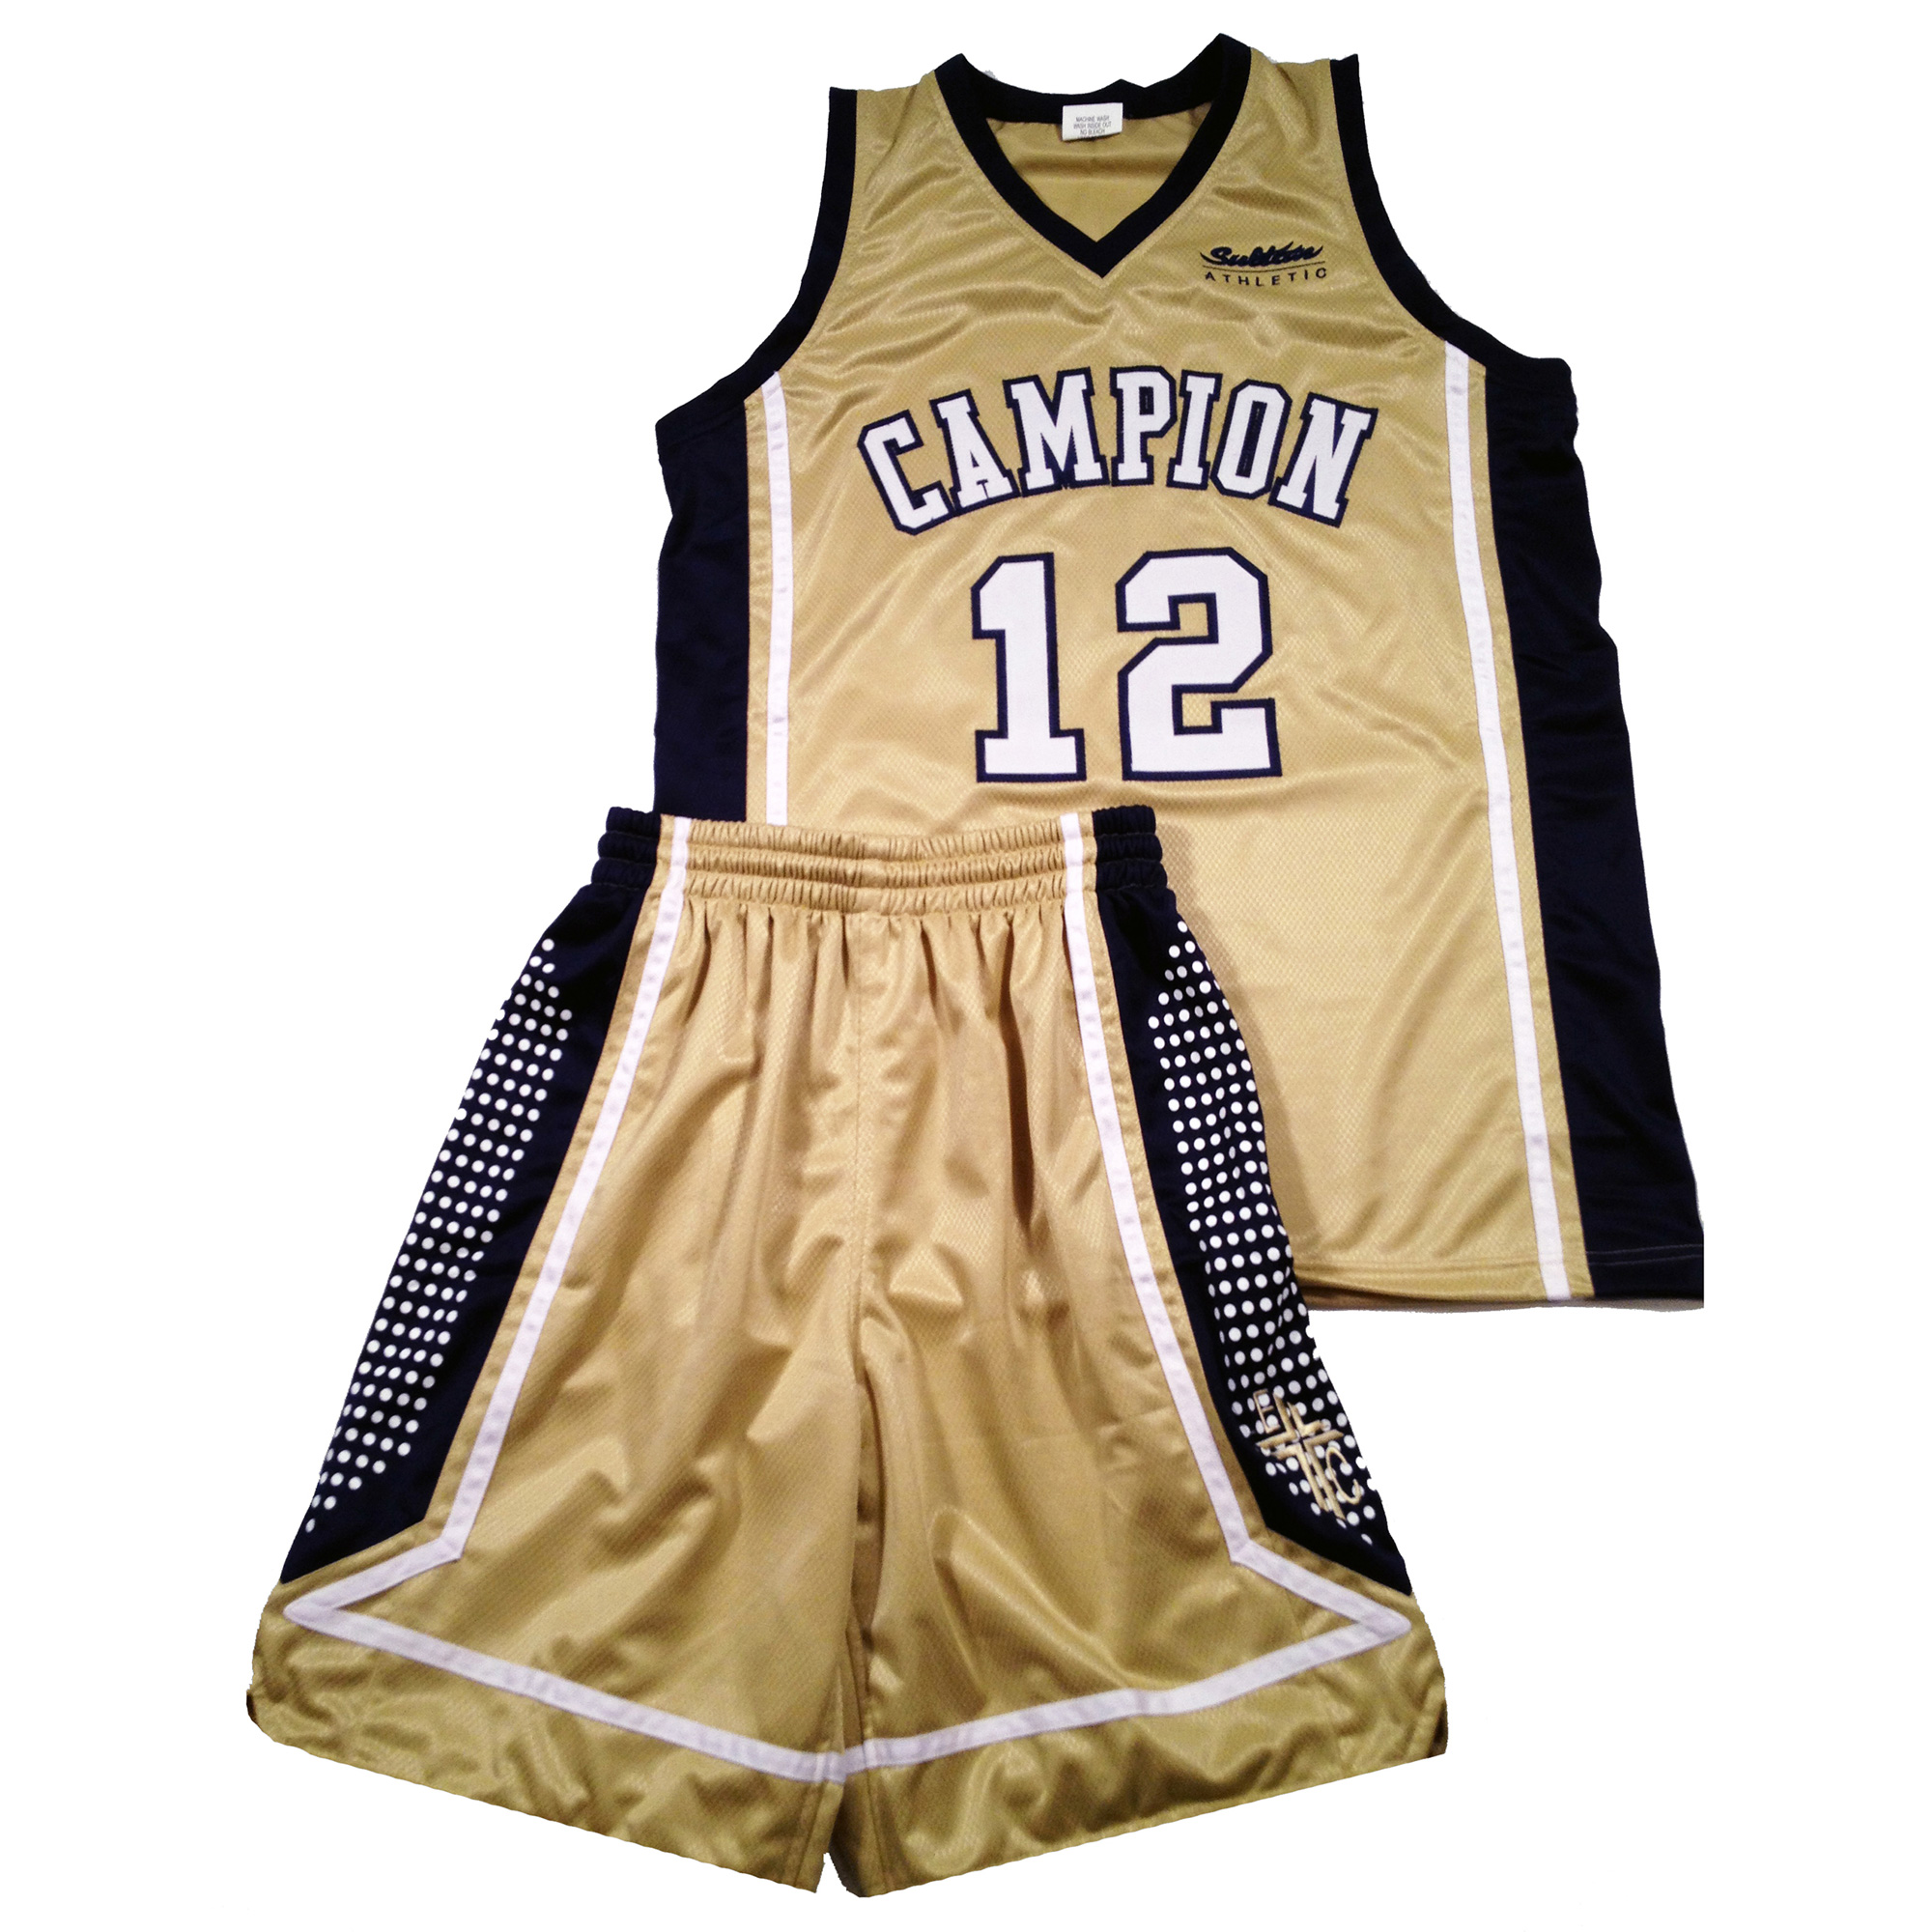 649720c08 Custom Basketball Jersey - Sultan Athletic - Free Canada + US Shipping